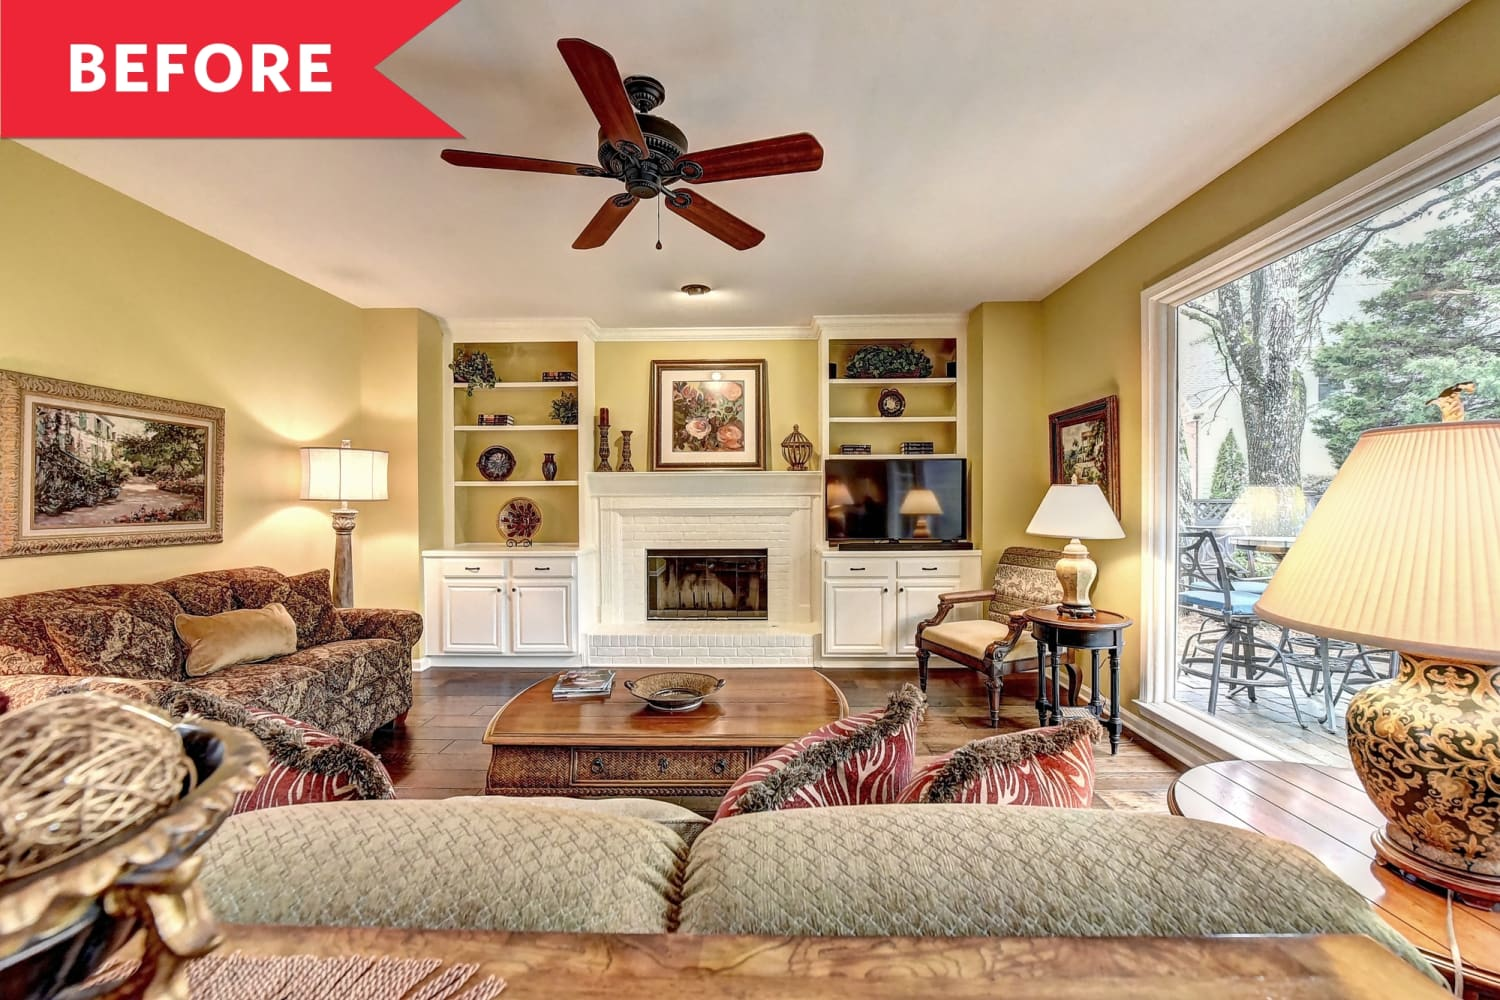 Before and After: This $500 Living Room Redo Proves the Power of Paint